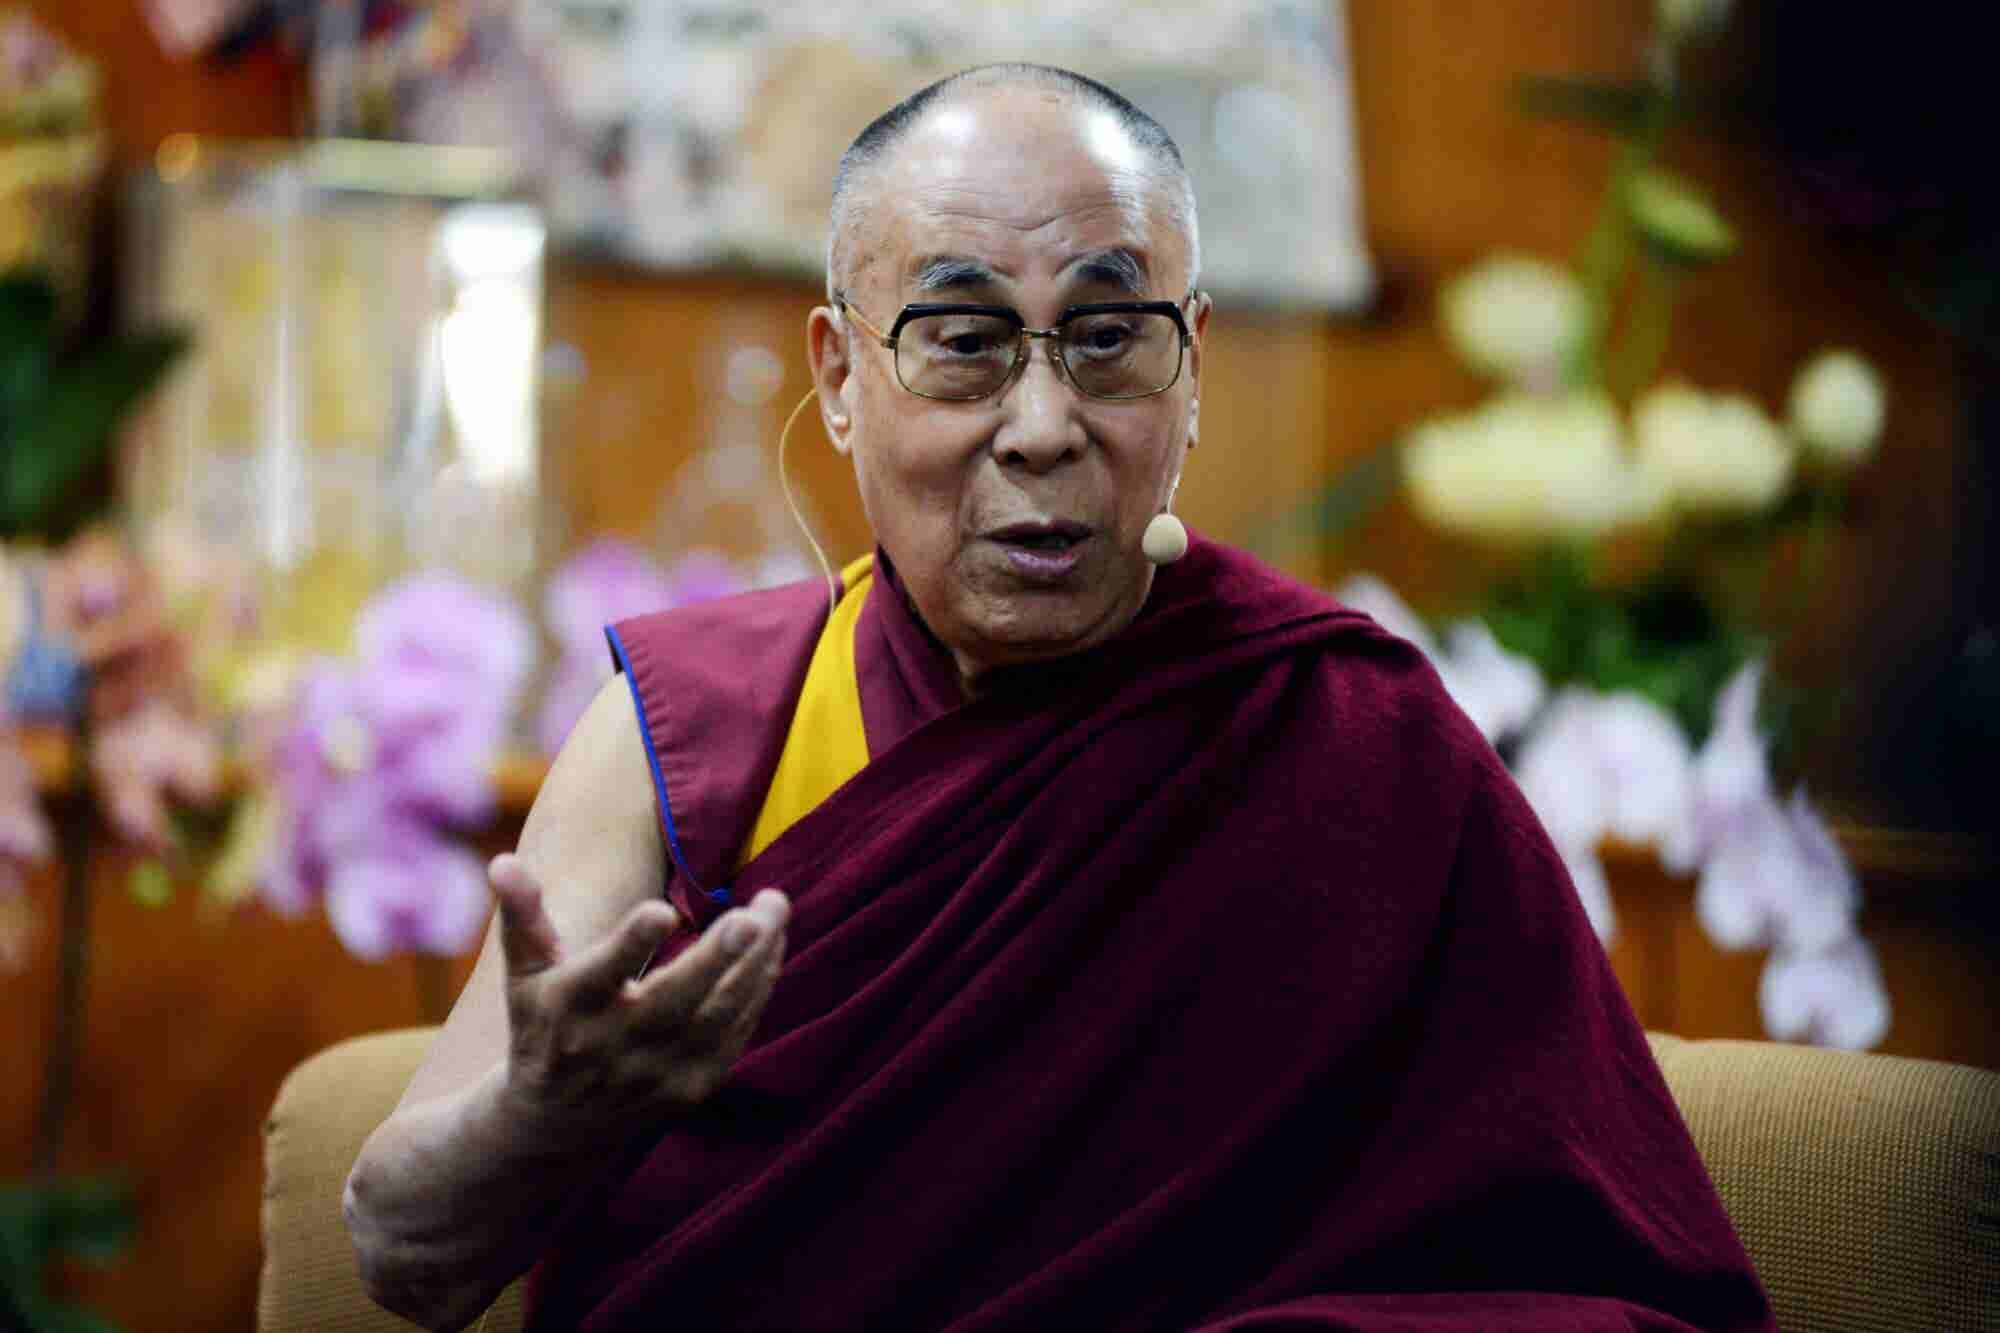 3 Observations About Compassion From the Dalai Lama That Could Change...